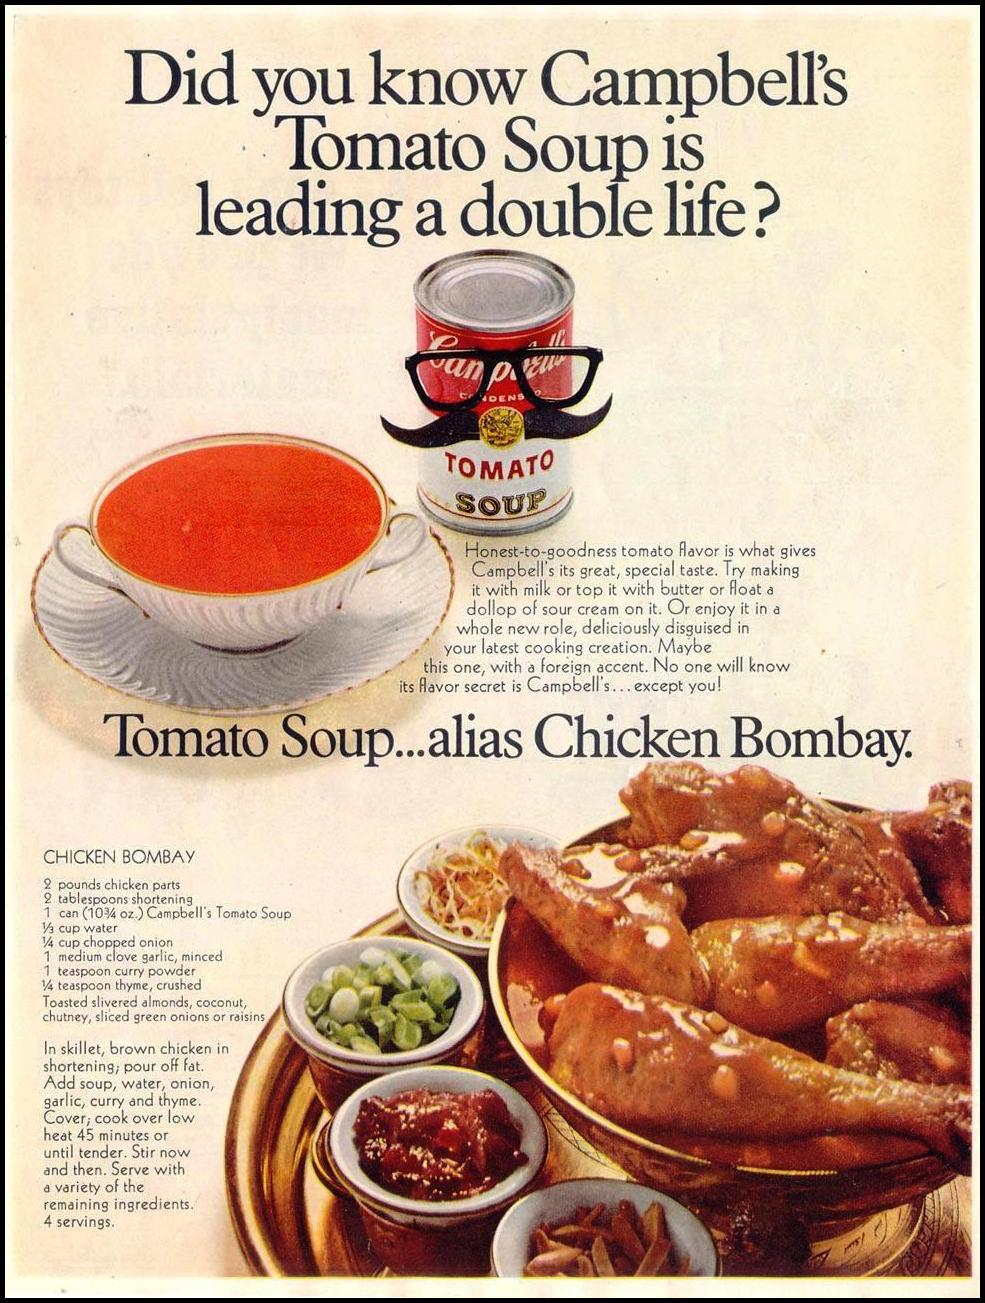 CAMPBELL'S TOMATO SOUP SATURDAY EVENING POST 12/28/1968